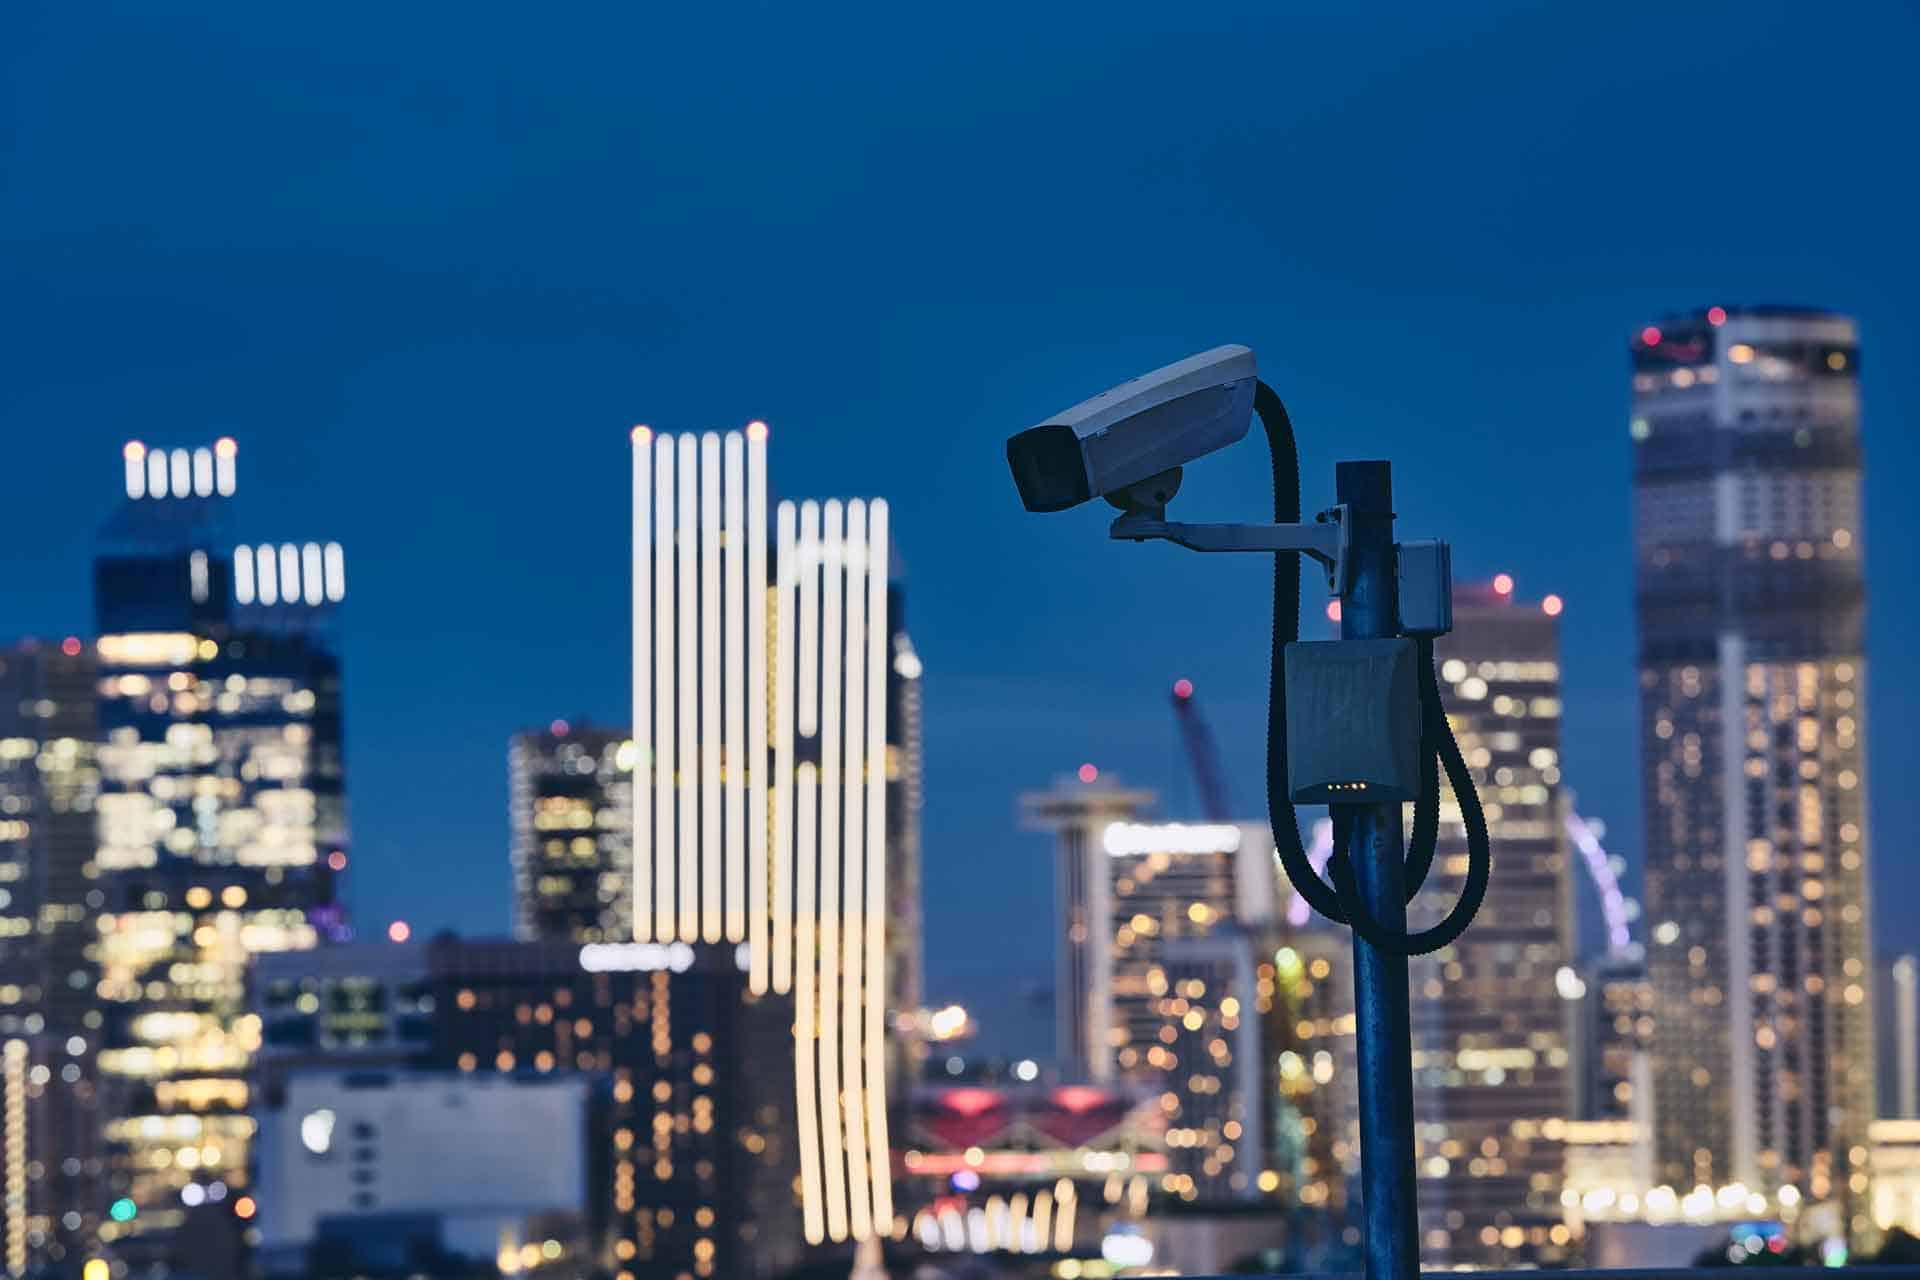 CCTV camera used by a NYC Security Company